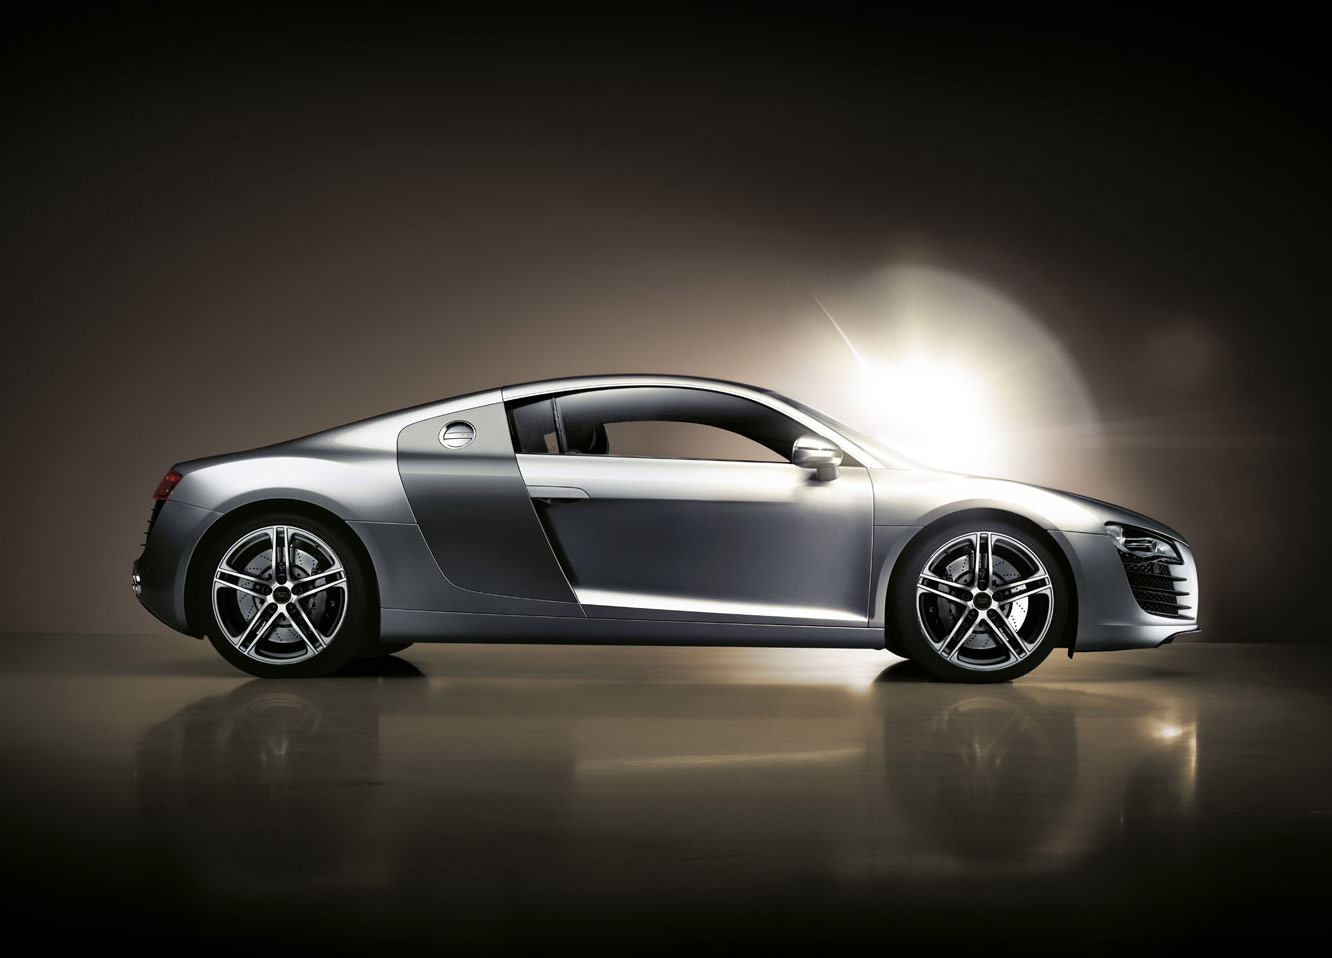 world-best-2door-sport-car-wallpaper-for-wide-screen-display